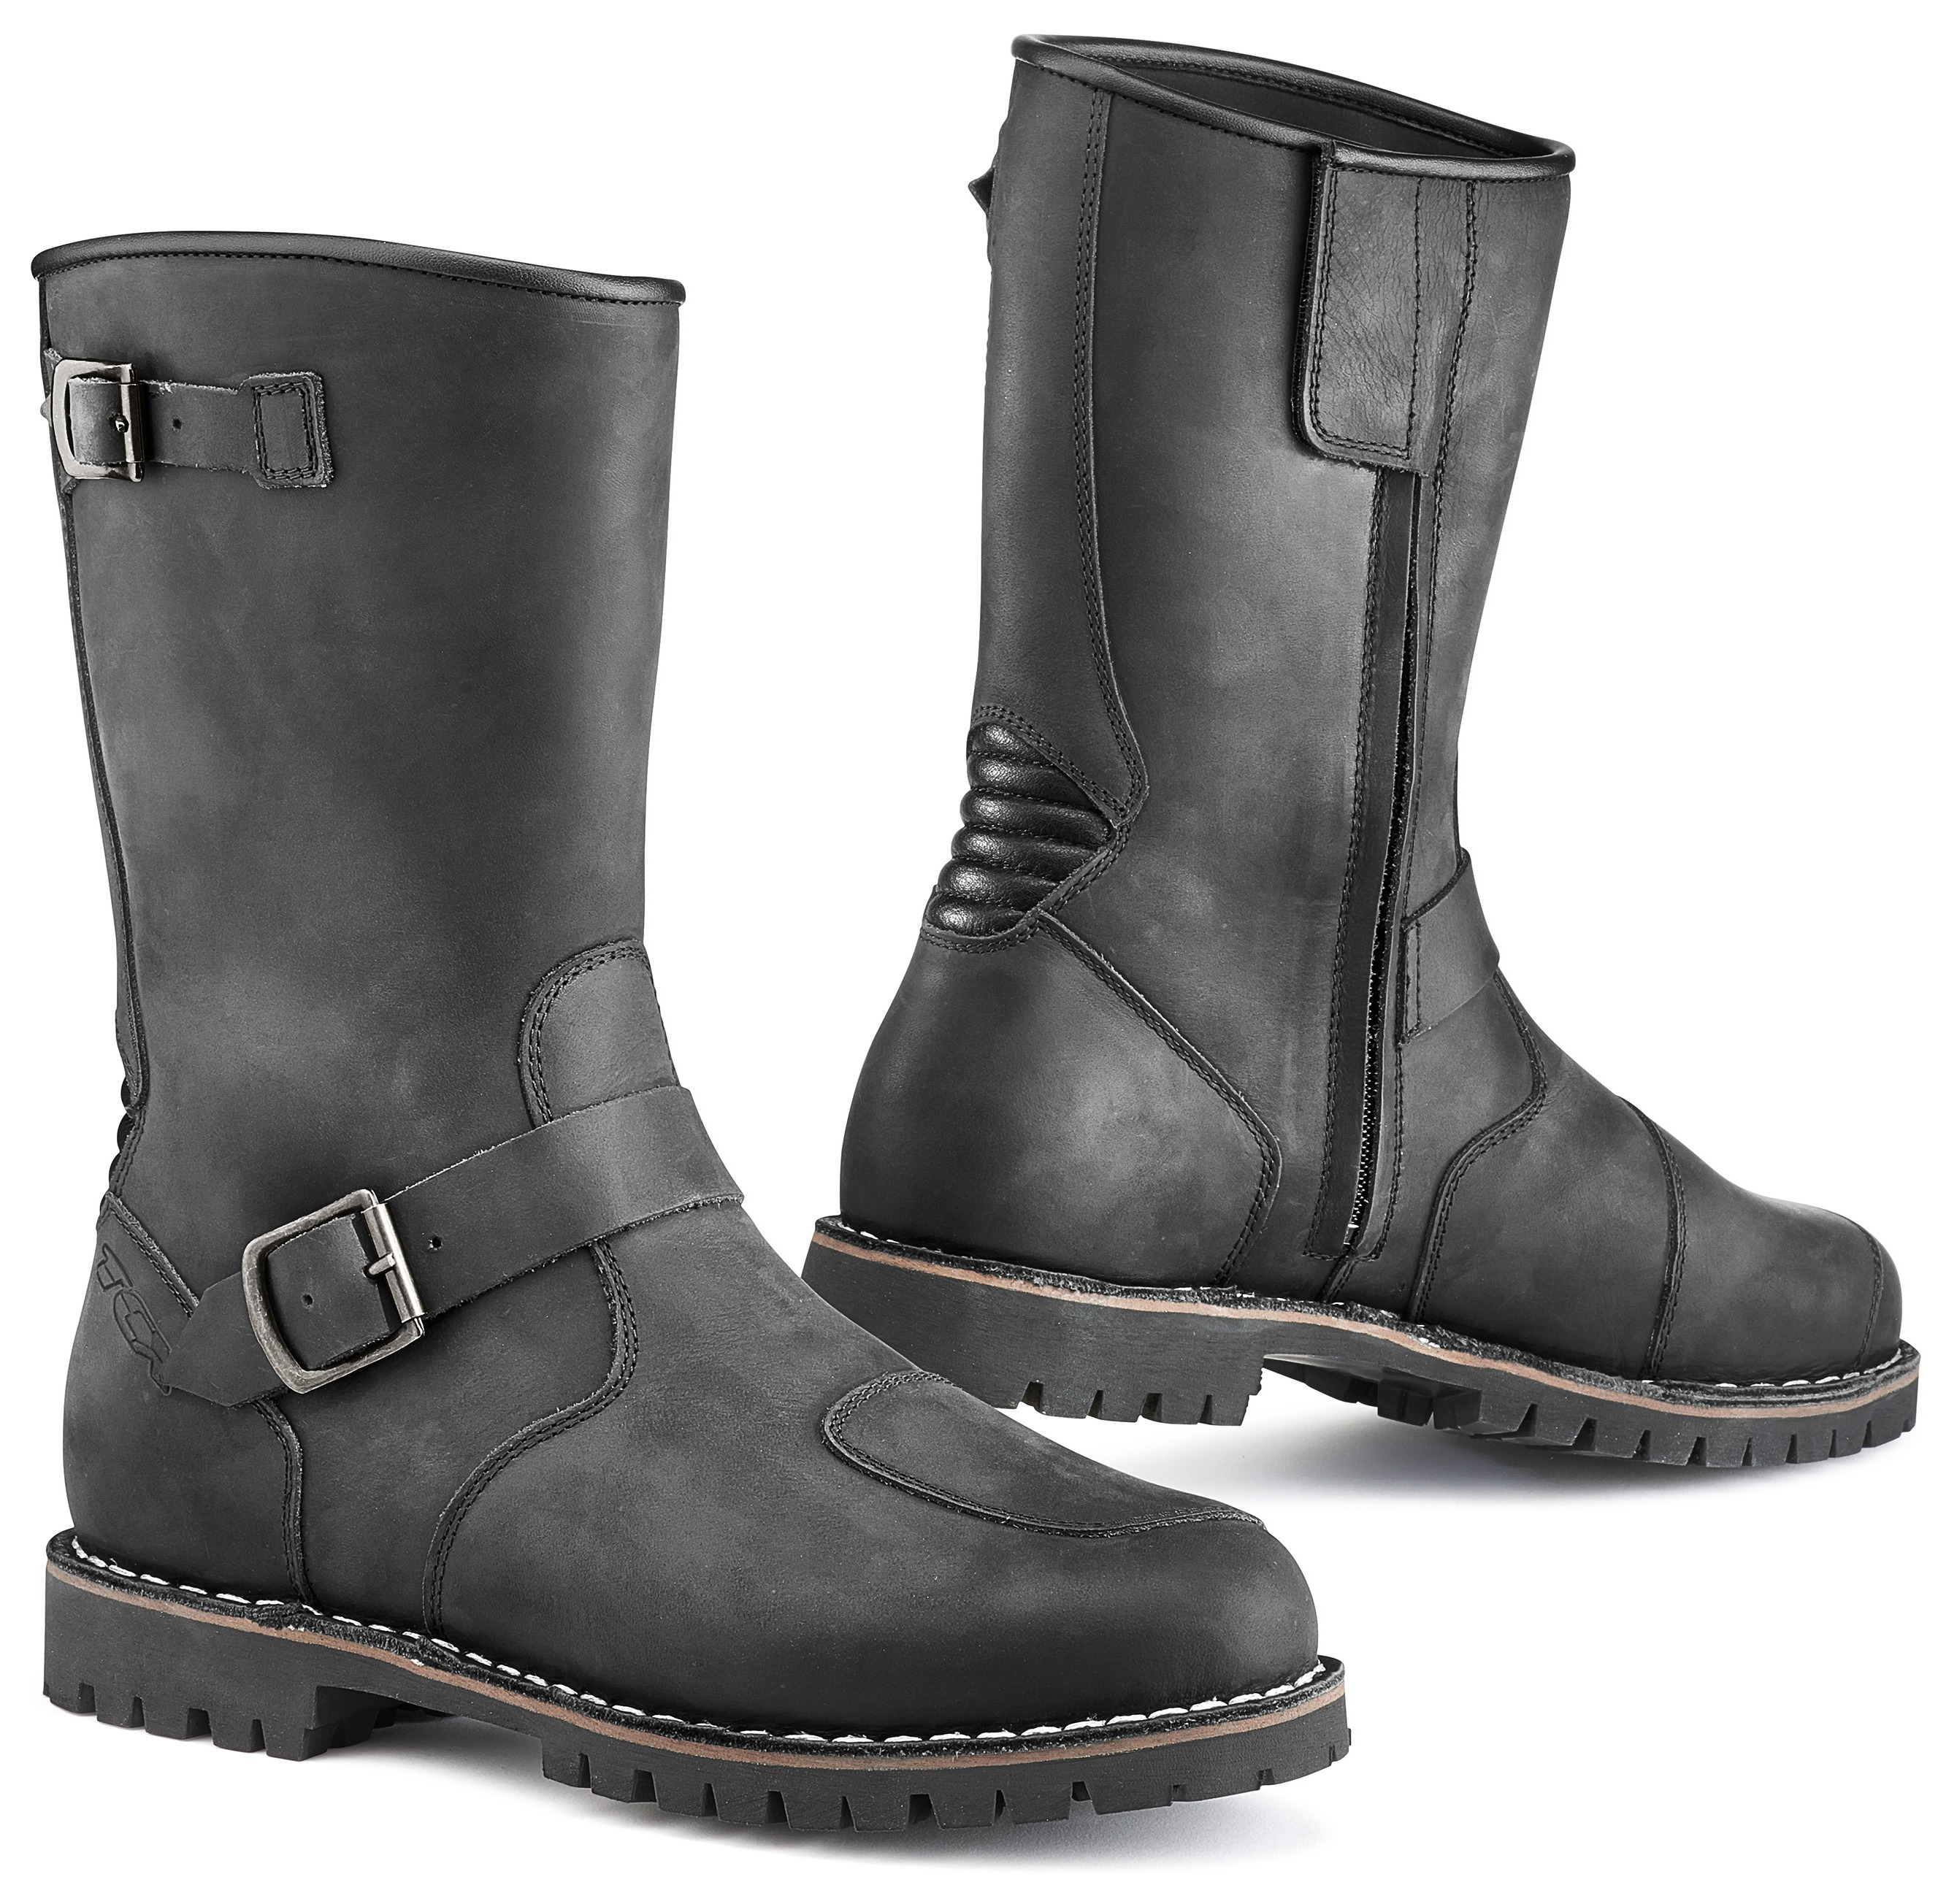 Tcx Fuel Wp Boots Cycle Gear